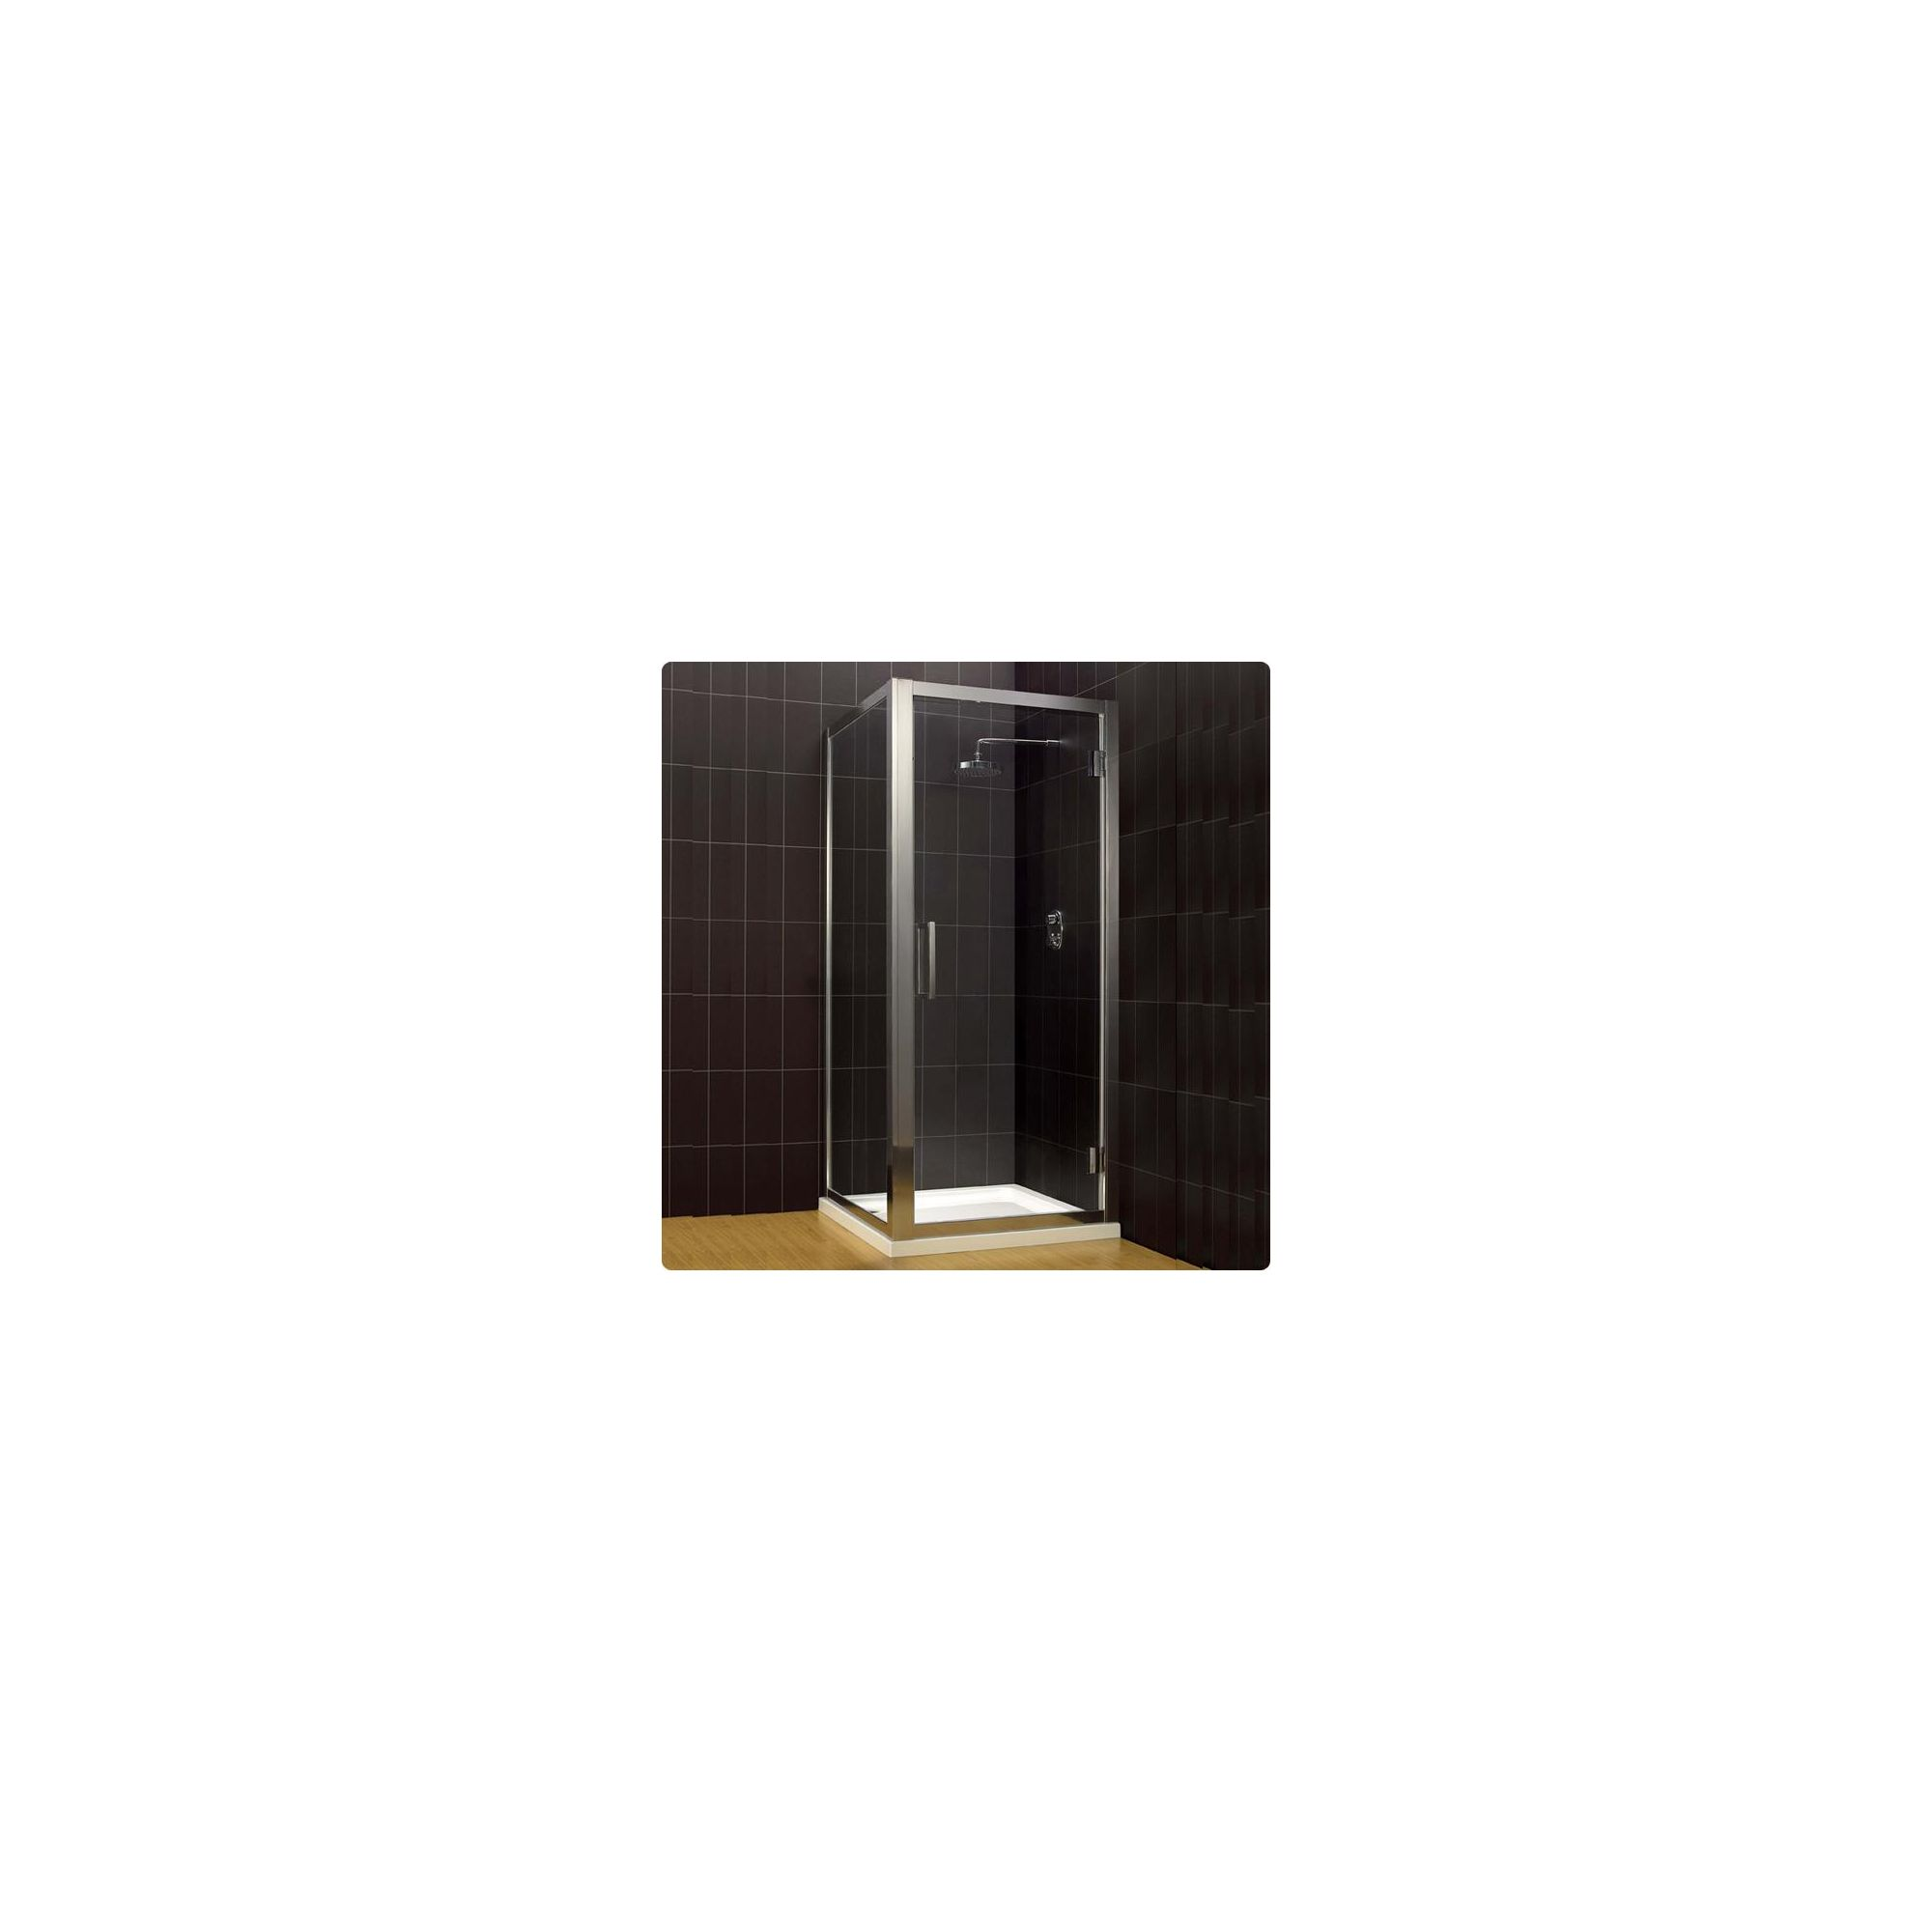 Duchy Supreme Silver Hinged Door Shower Enclosure with Towel Rail, 1000mm x 700mm, Standard Tray, 8mm Glass at Tesco Direct